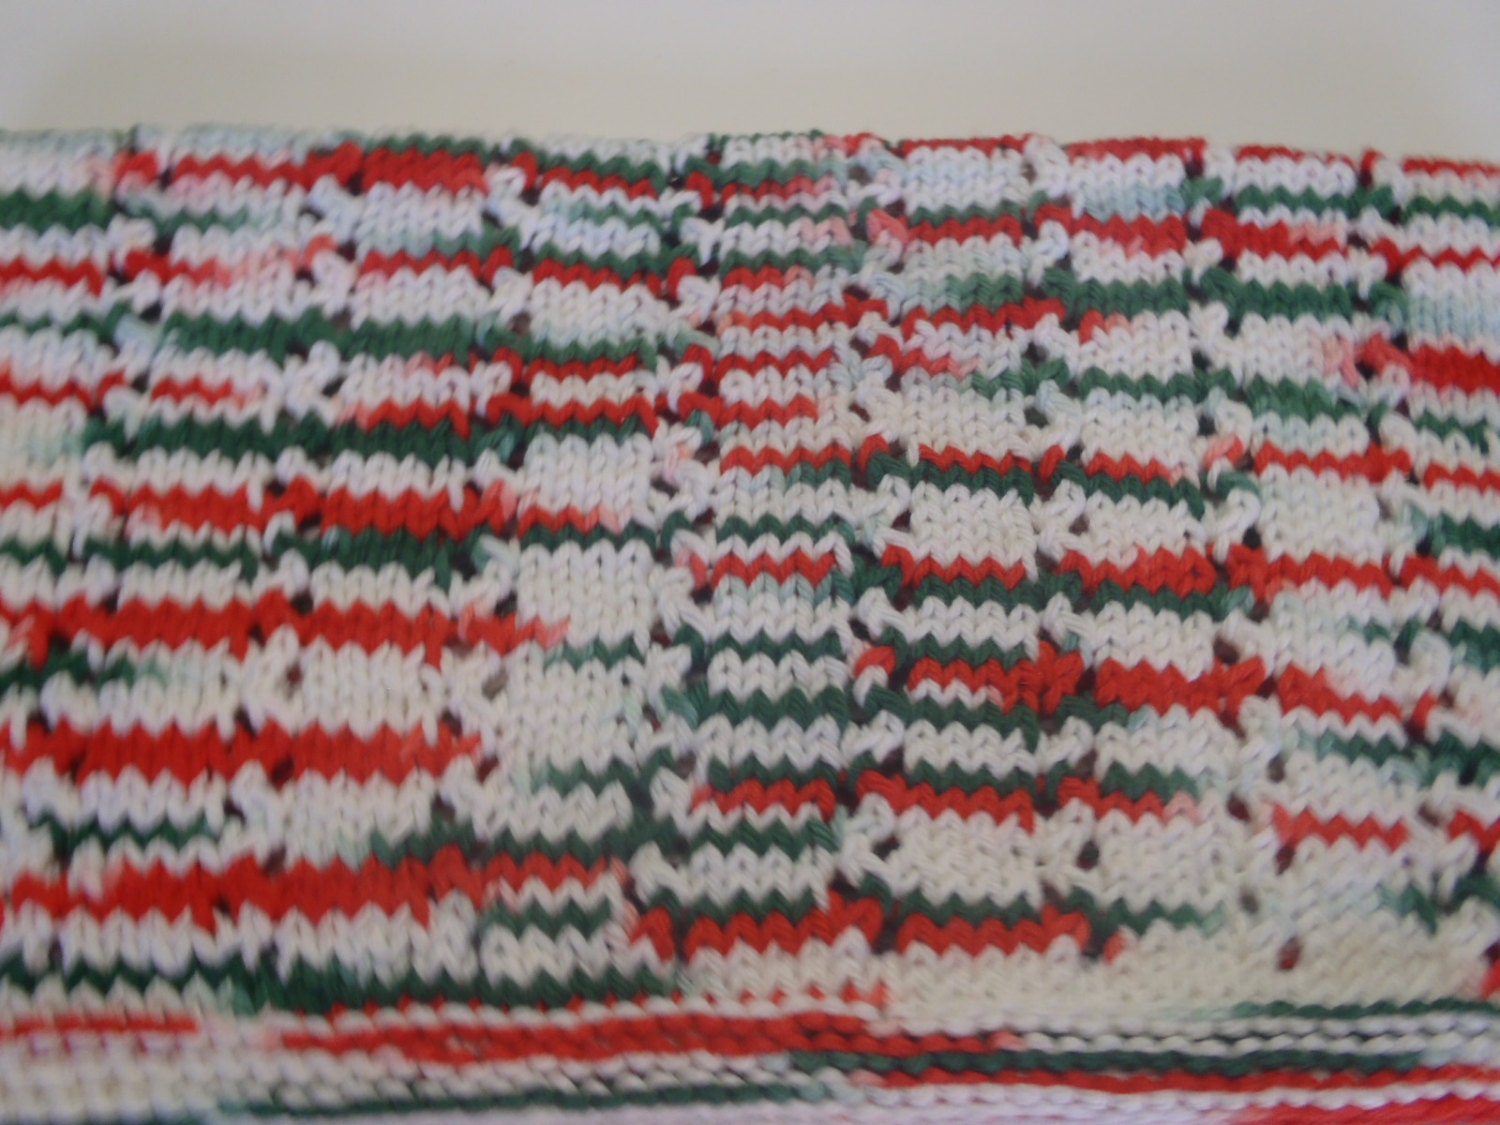 Knit Dish Towel Christmas Kitchen Towel Cotton Eyelet by AMailys